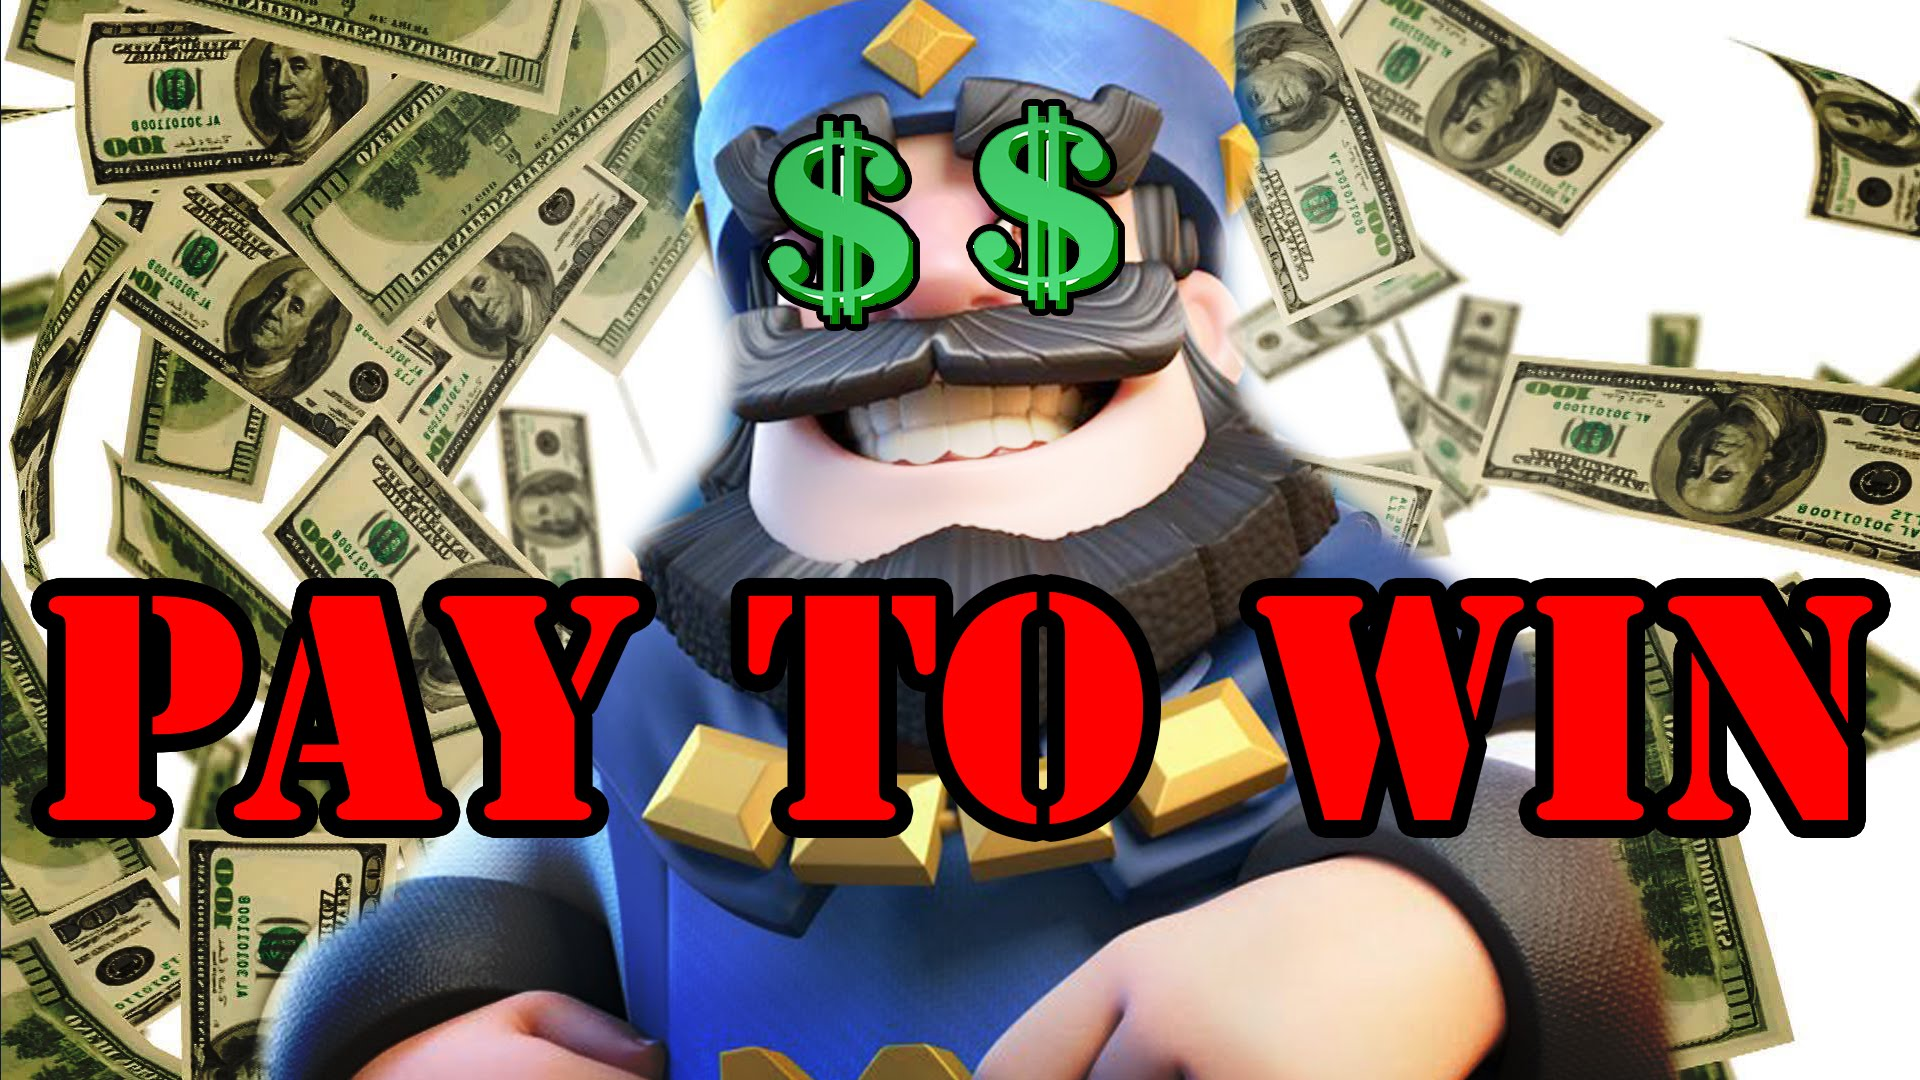 Pay To Win! - Ever wonder what you can do if your video gaming is just not up to par? This week we tell you how how you can pay to win threw micro transactions and services where you do not even have to play the game.